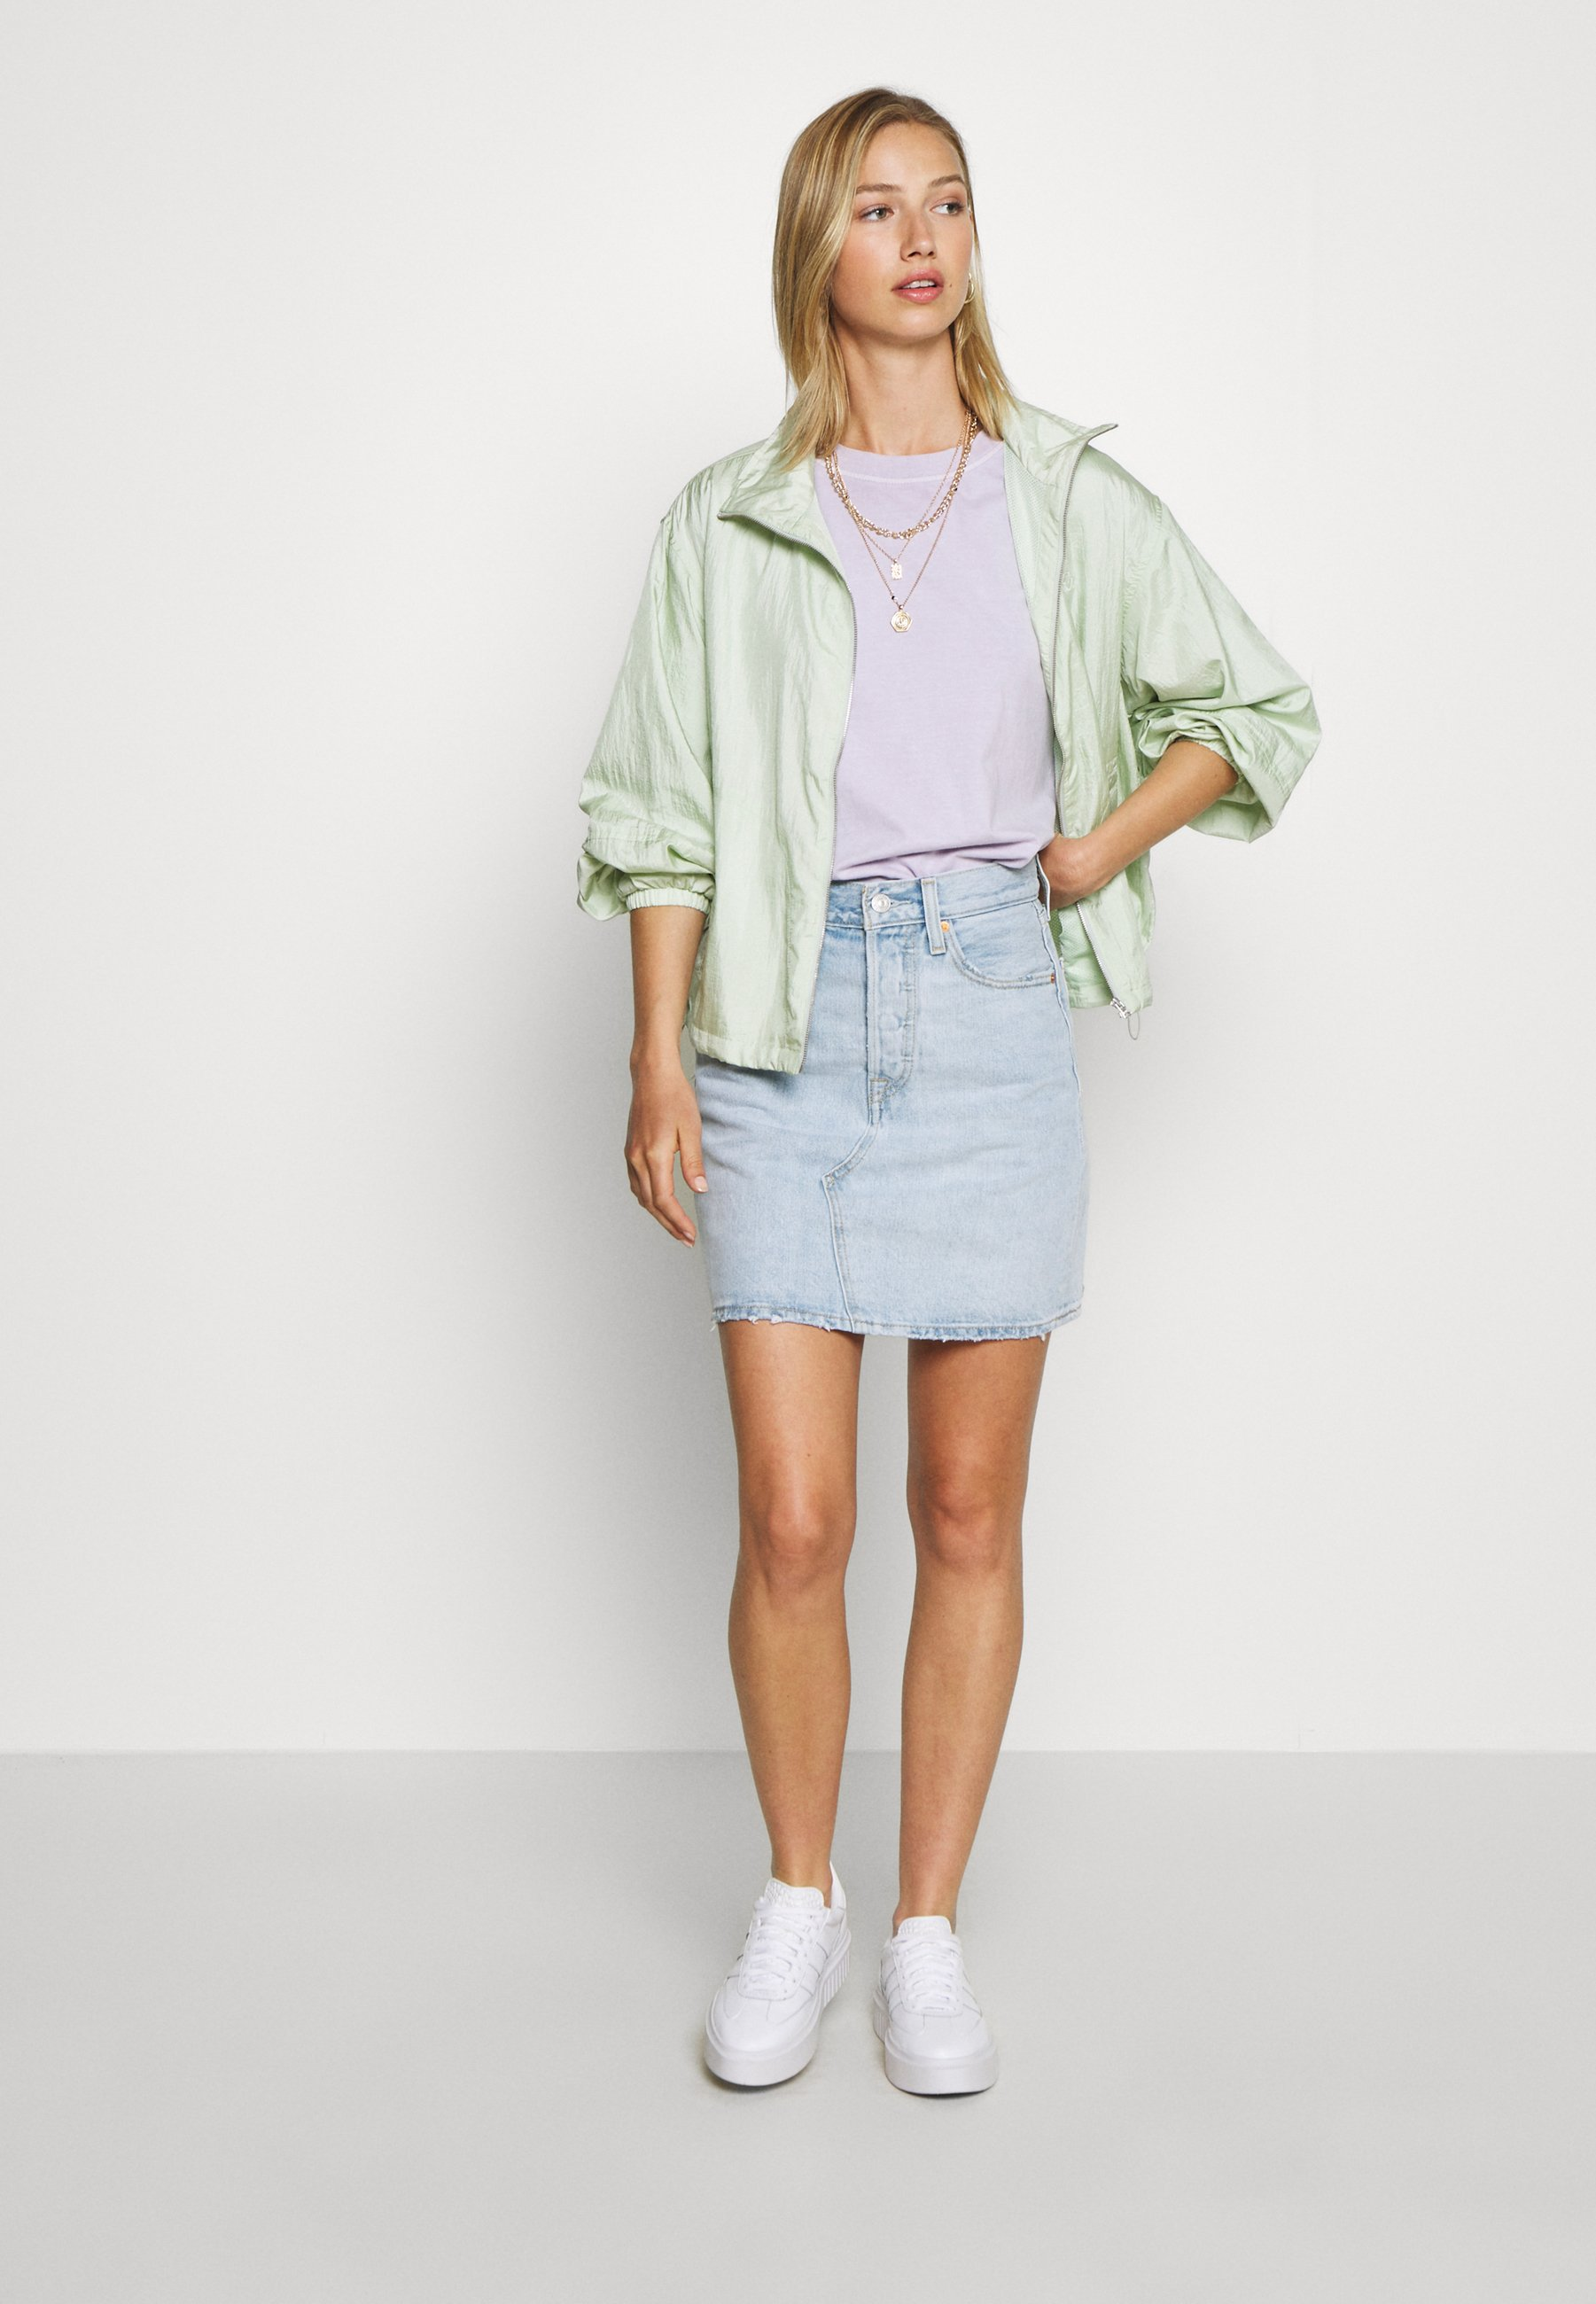 Levi's® Decon Iconic Skirt - A-snit Nederdel/ A-formede Nederdele Check Ya Later